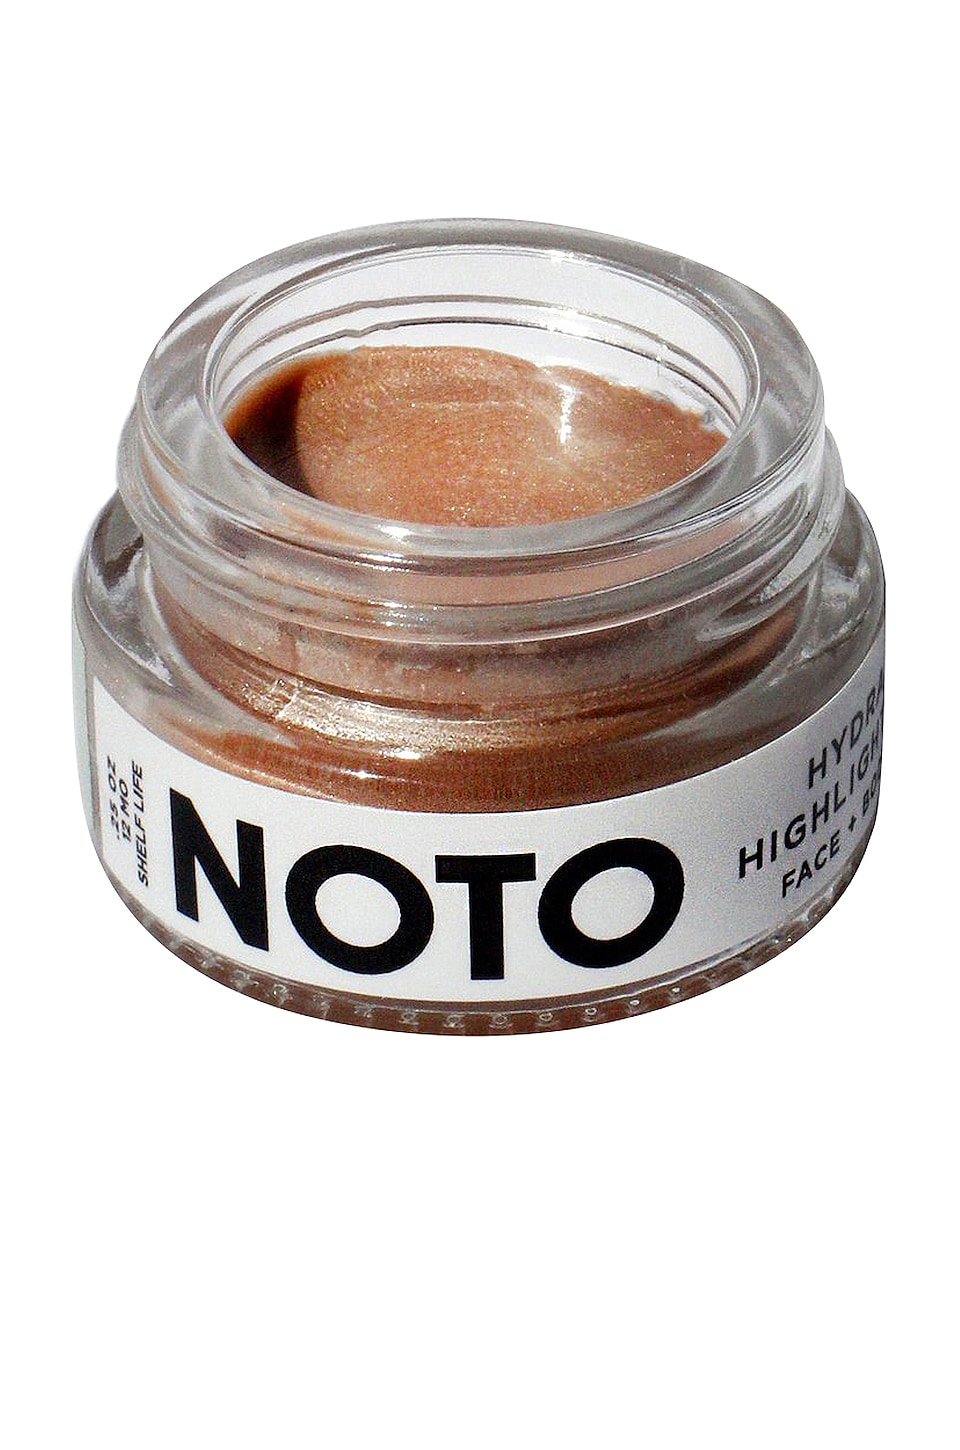 NOTO Botanics Hydra Hightlight in All